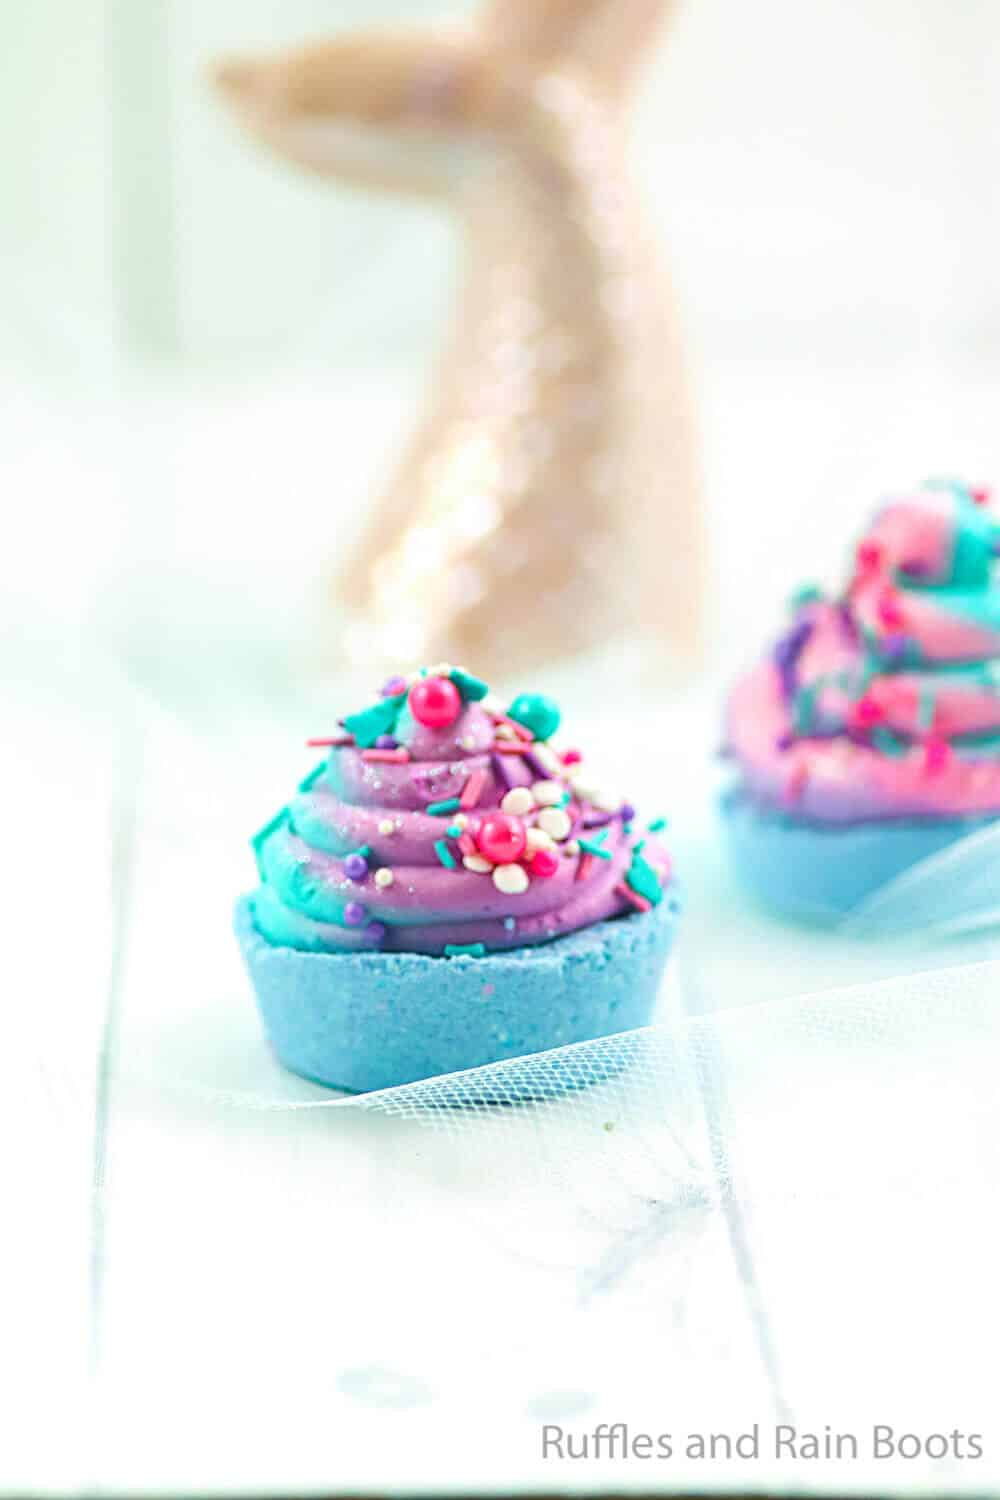 how to make a bath bomb with whipped topping like a cupcake